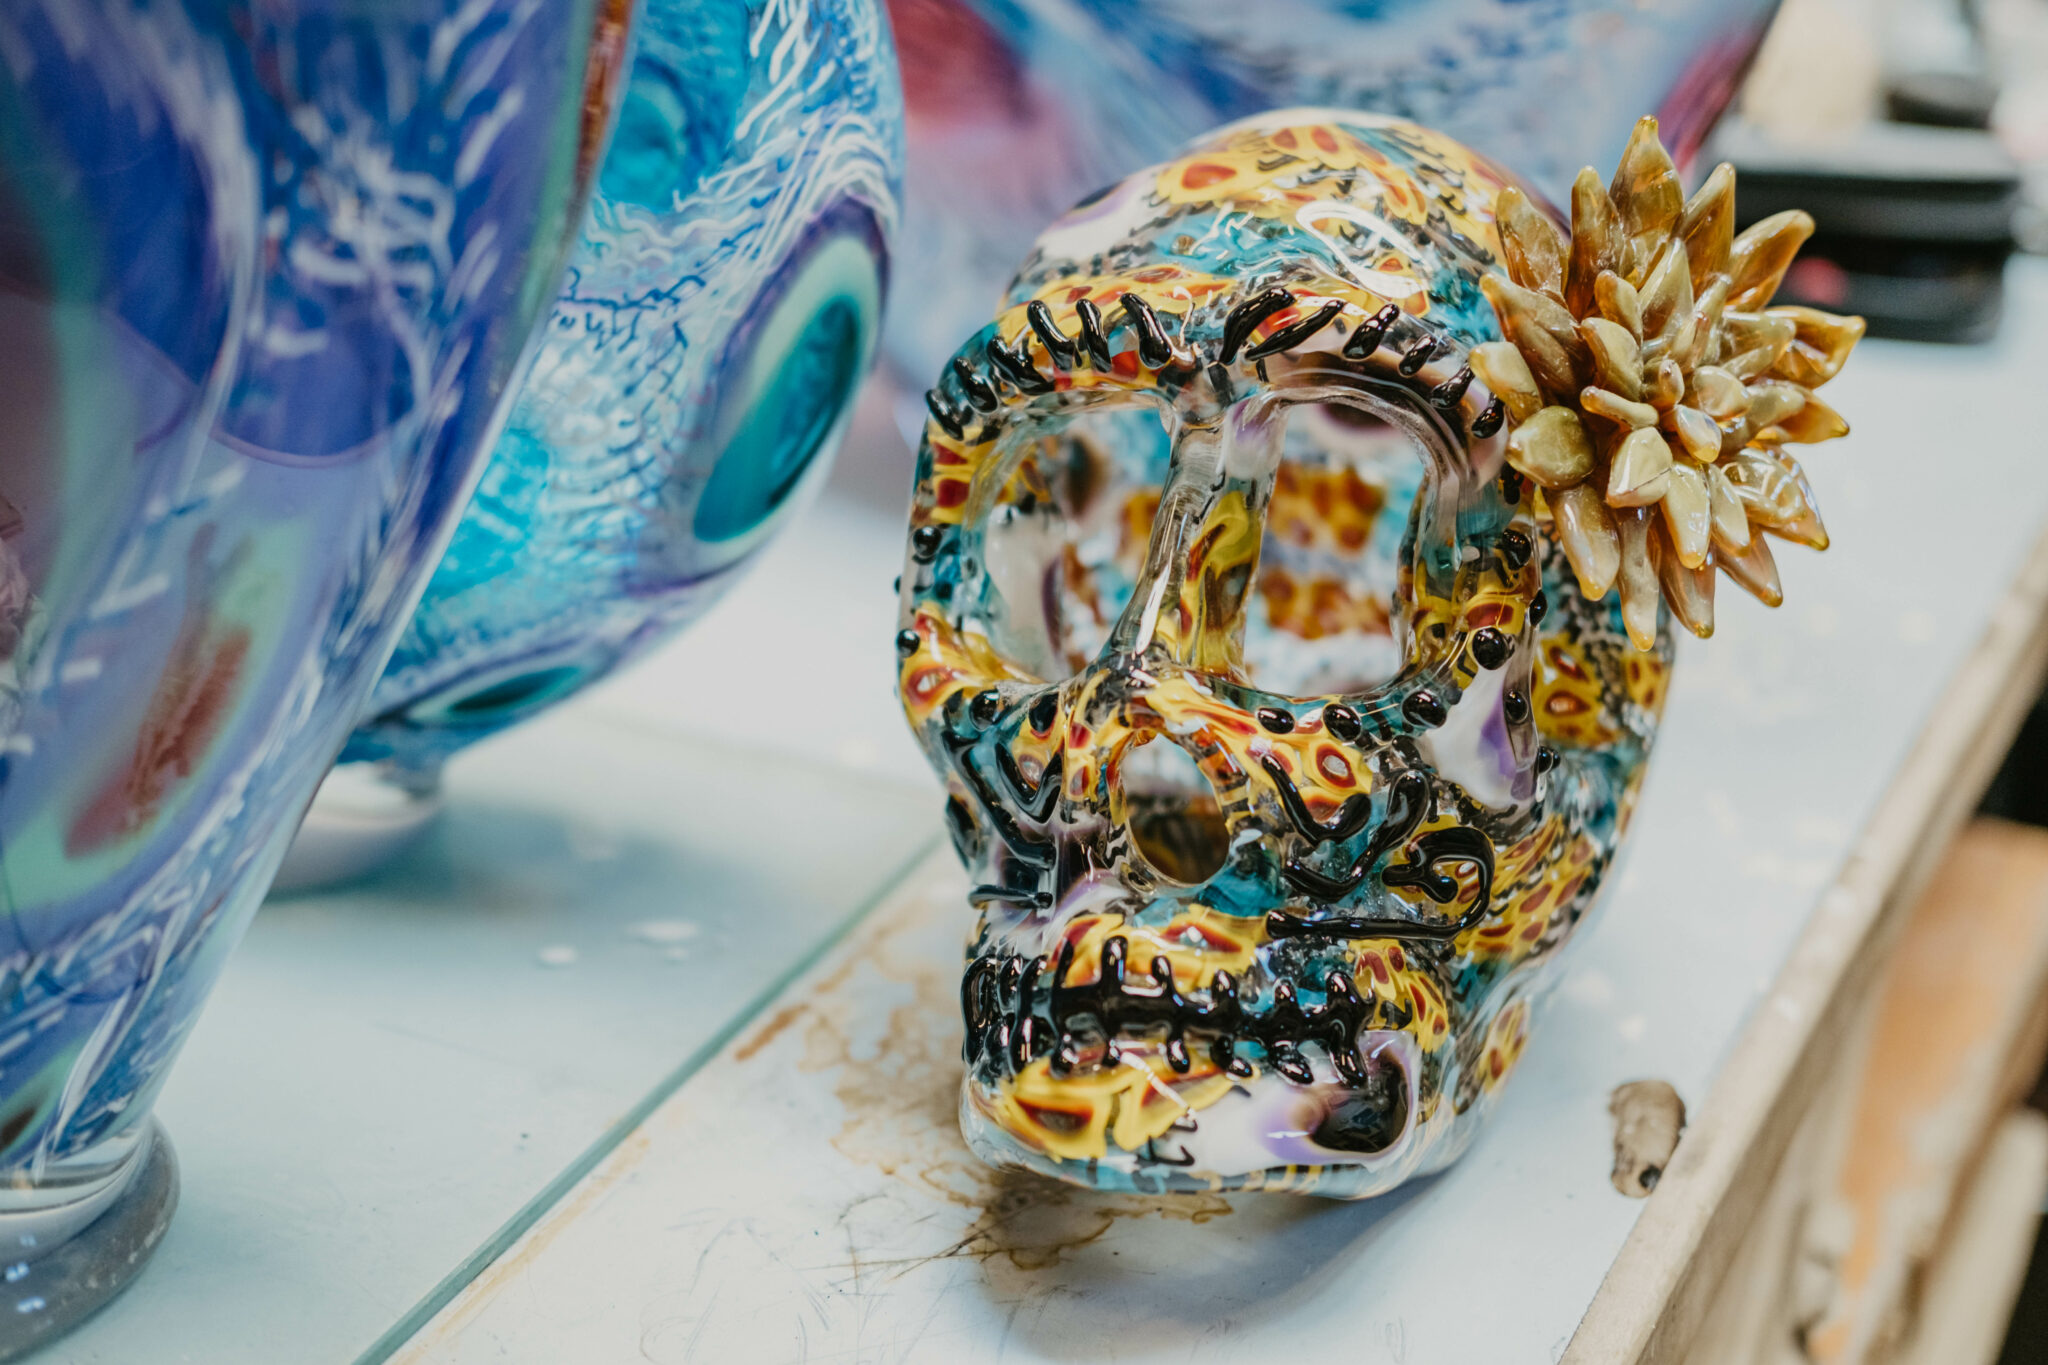 A glass piece representative of a cranium with a flower attached to the left side of its head. It has a painterly feel, with teal, yellow and orange all over patterns, and dark hash marks around the eyes and mouth. This piece is much smaller in scale than the pieces surrounding it that can be seen in the edges of the frame.